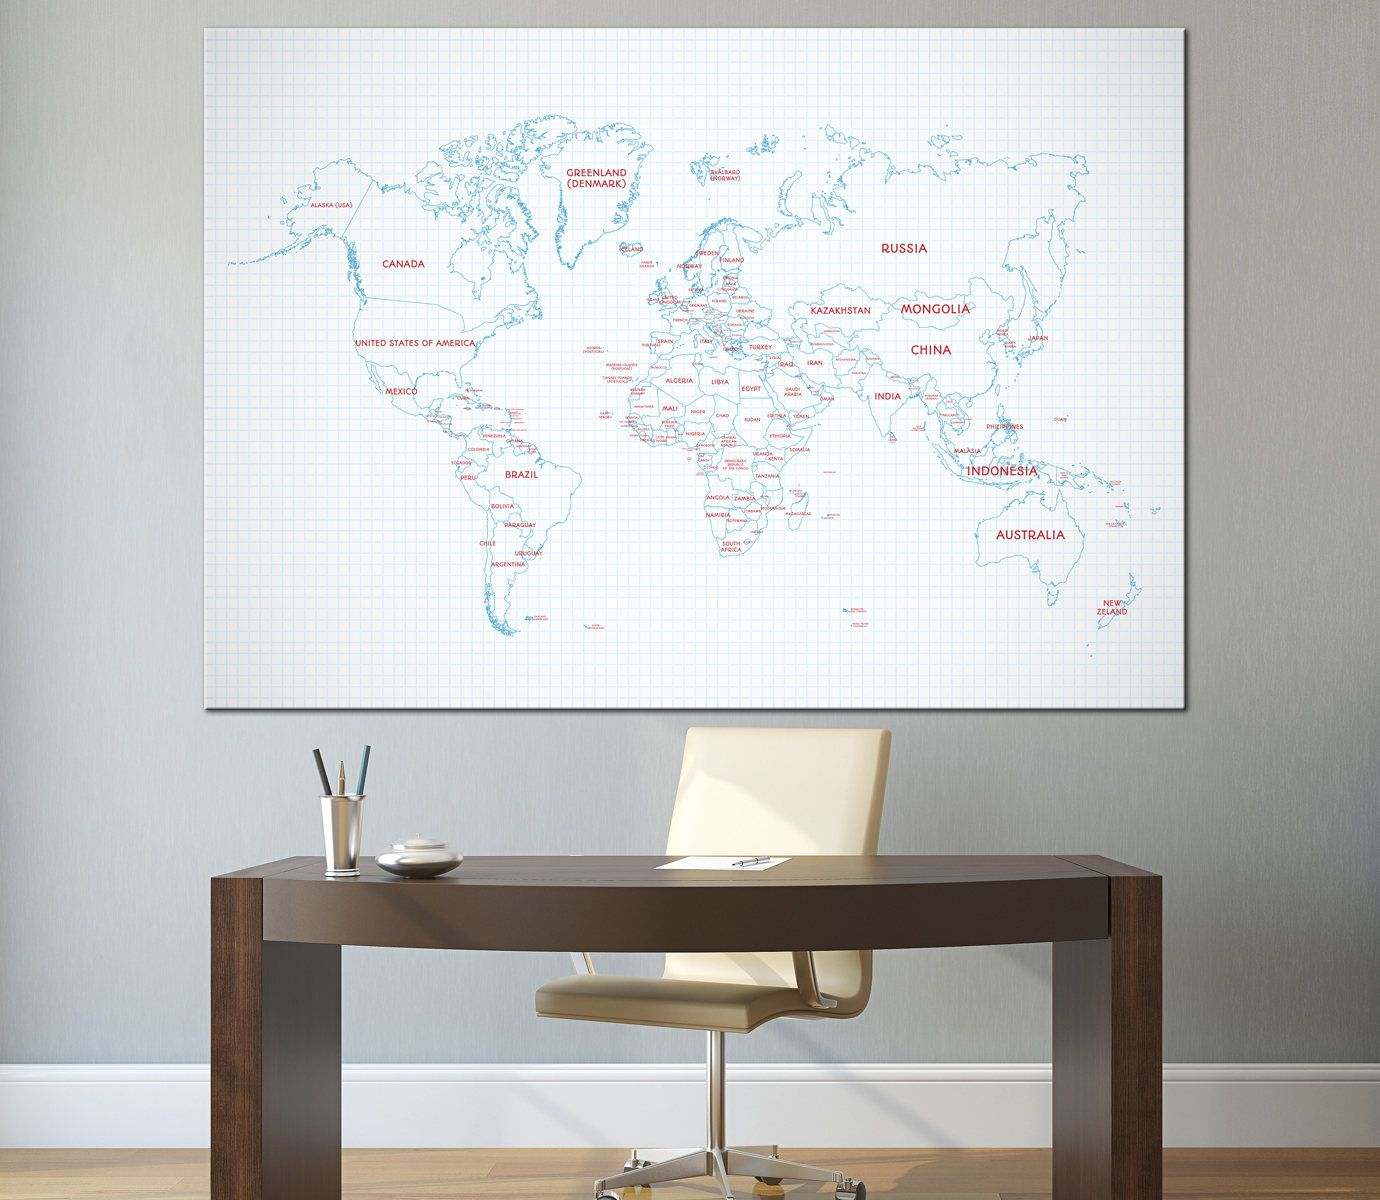 Large detailed blue world map wall art with countries names and large blue world map wall art with countries names and borders canvas printdetailed world gumiabroncs Images